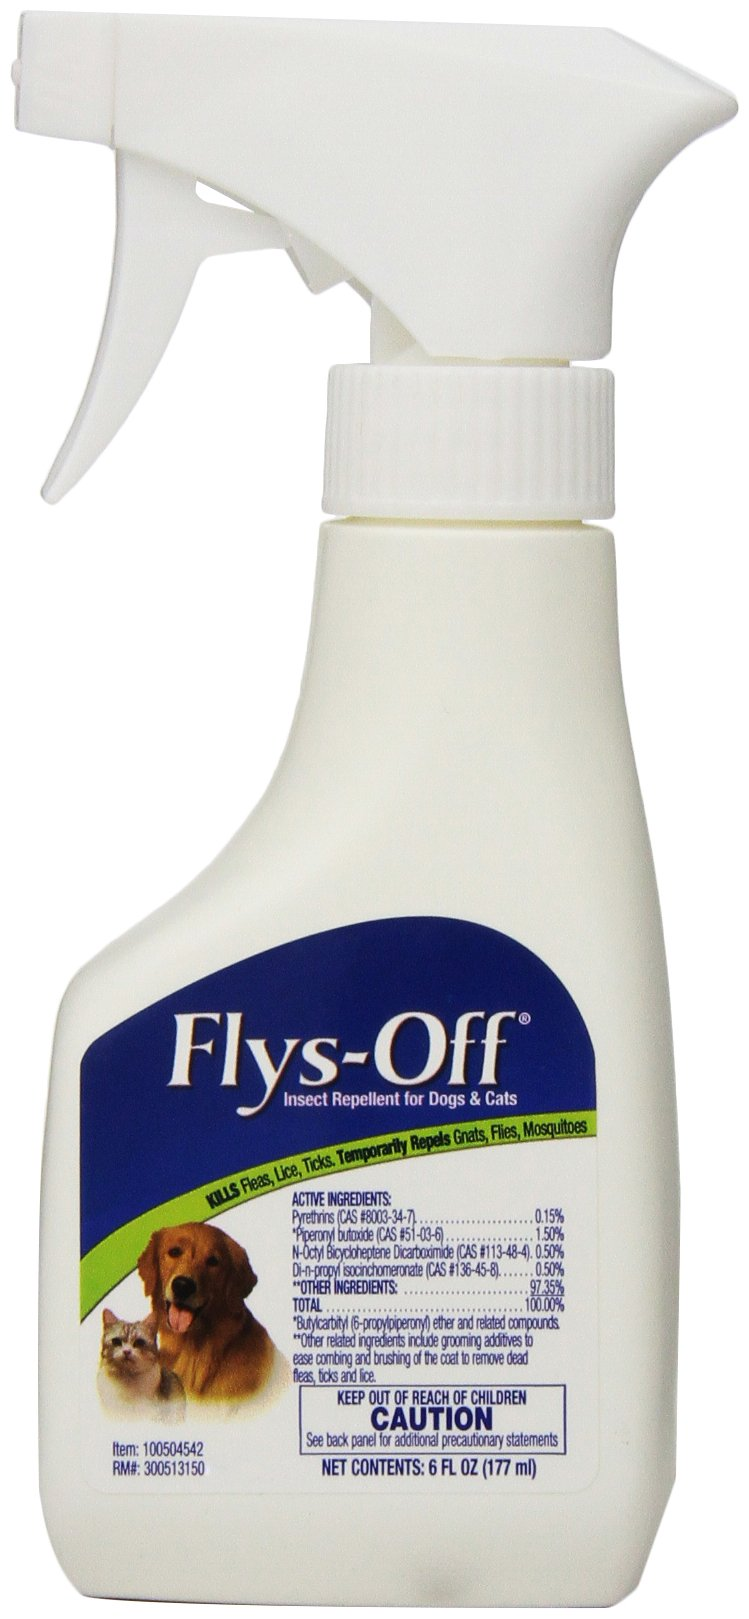 Farnam Flys-Off Insect Repellent for Dogs & Cats, 6 fl oz